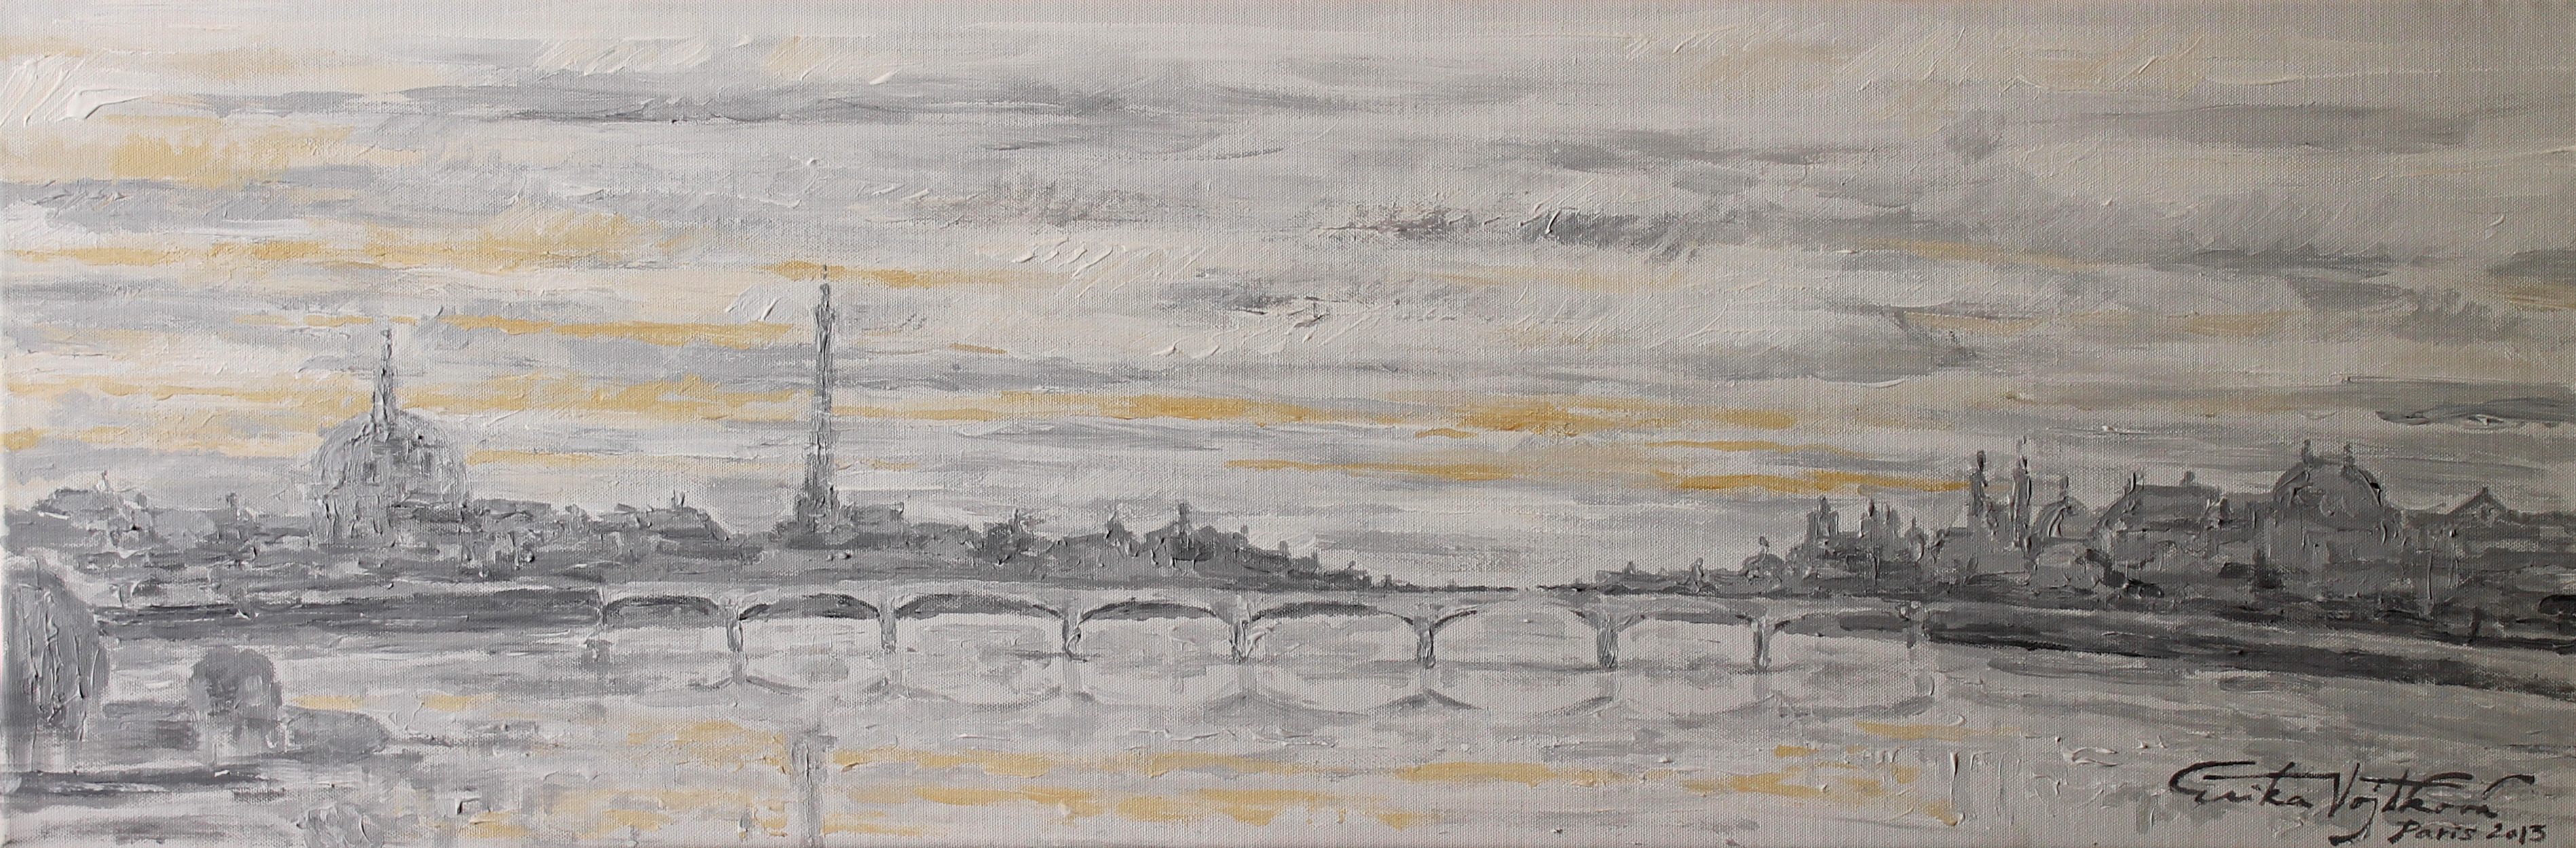 Sunrise in Paris 2013 - SOLD